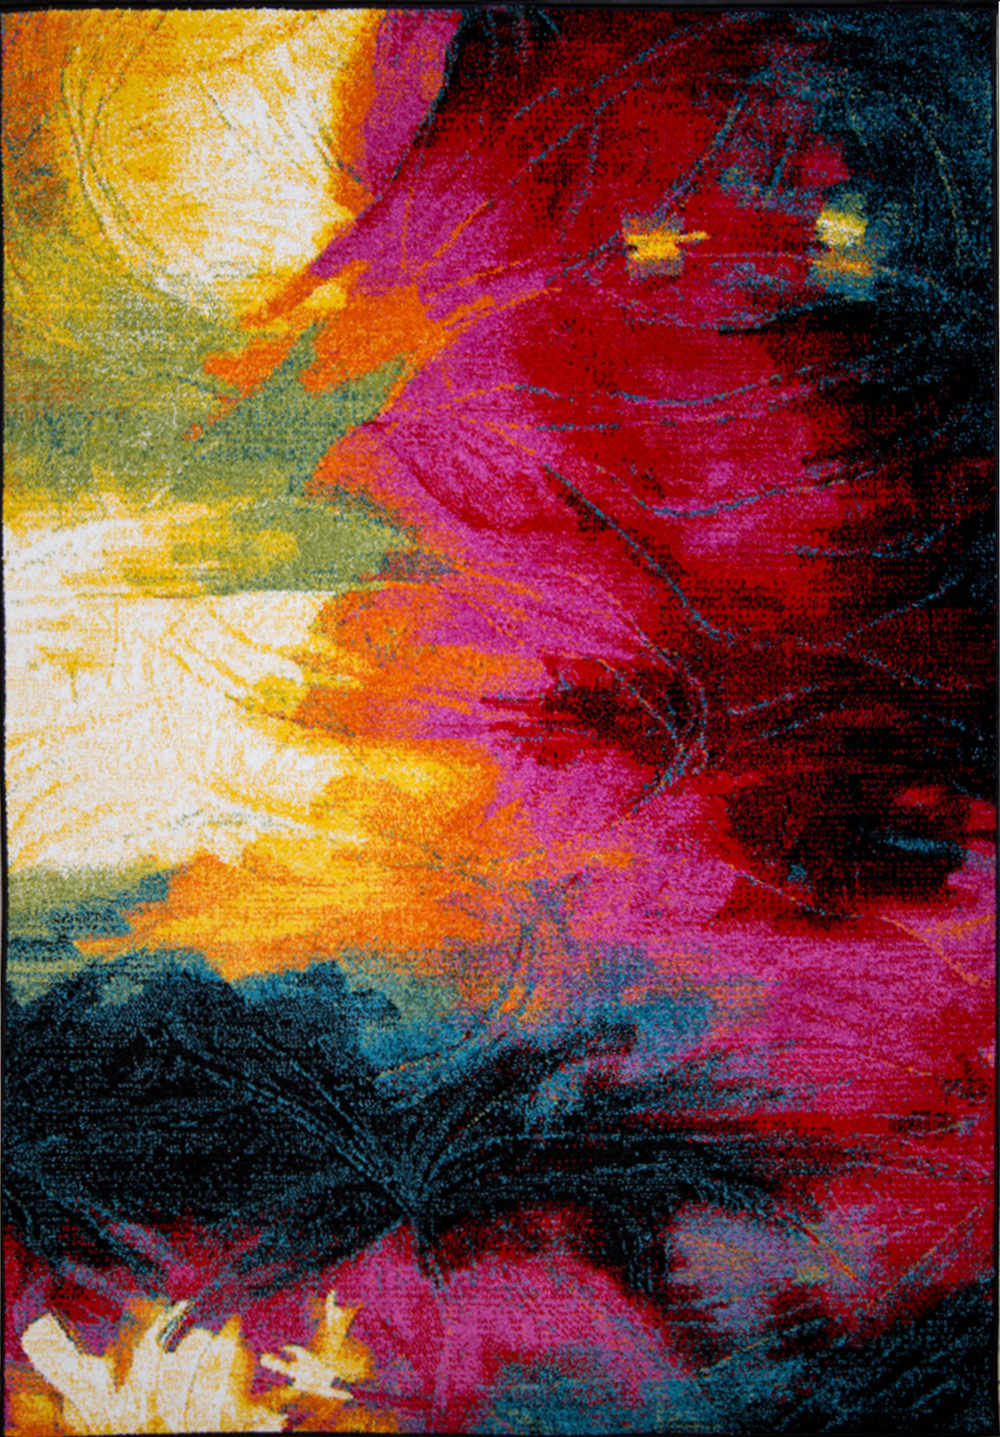 Details About Rugs Swirls Contemporary Modern Area Rug Multi Color Abstract Paint Carpet